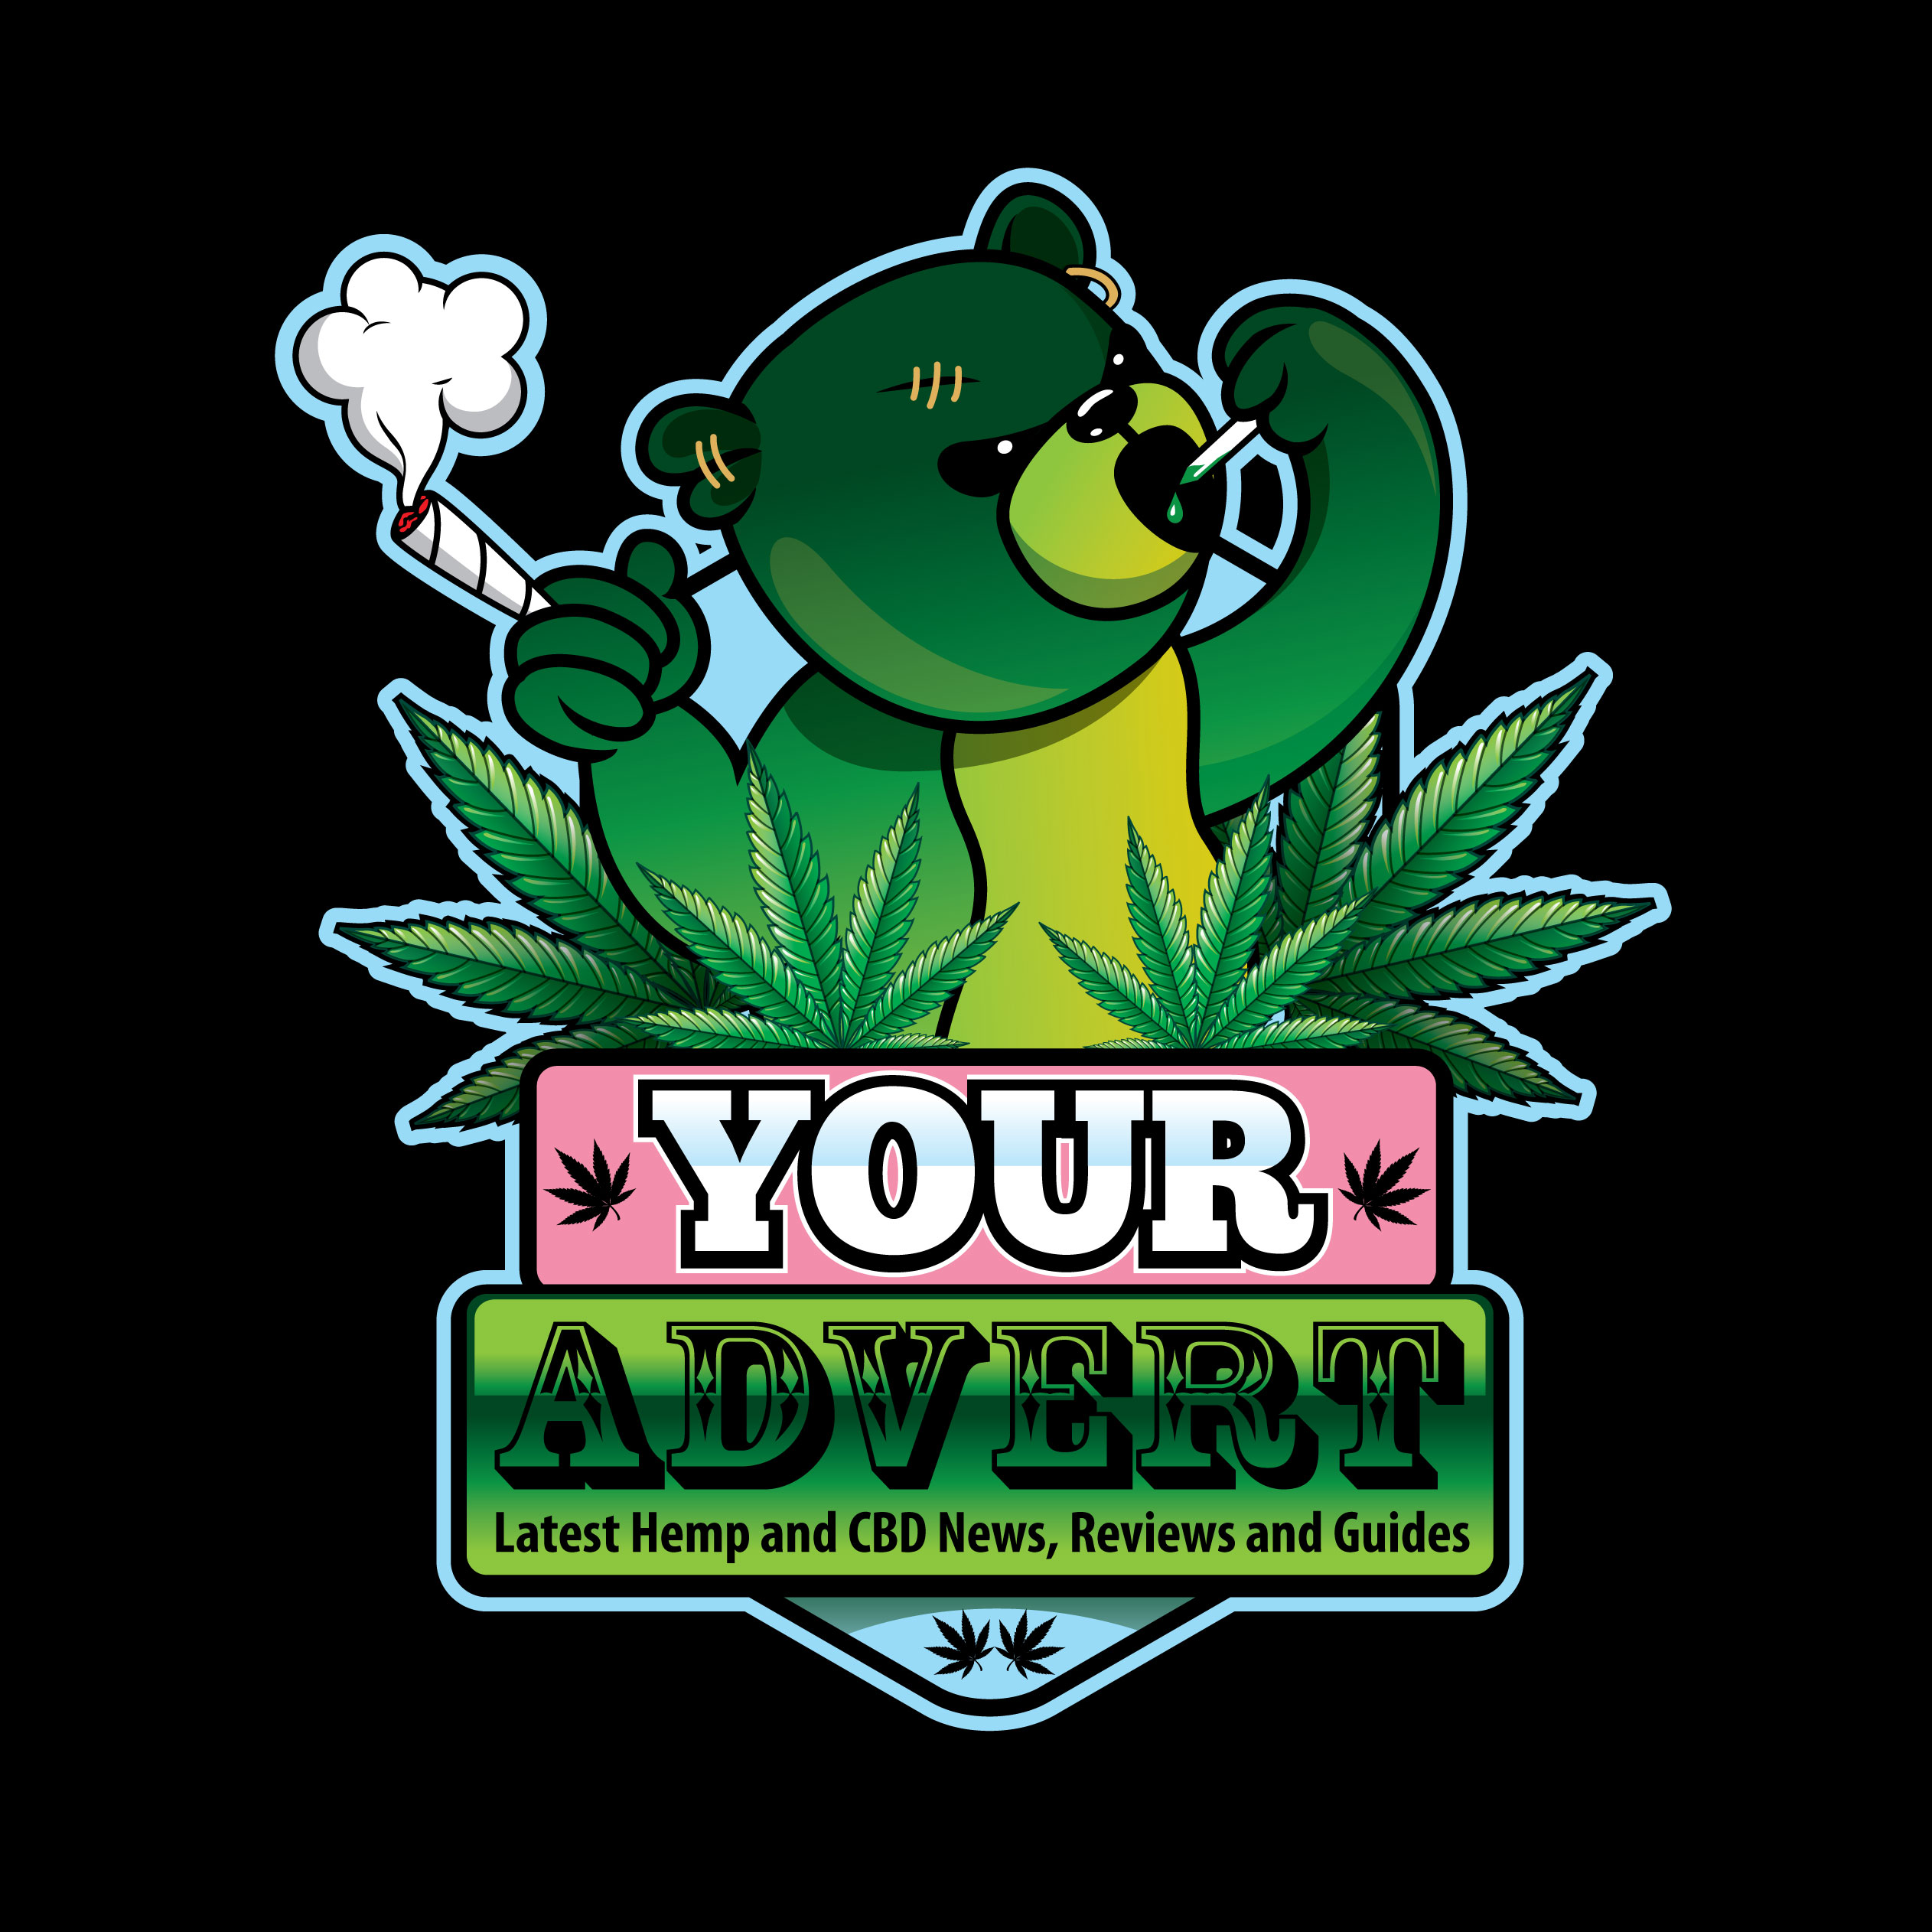 CBD Banner Advertising - CBD Magazine Banner ads